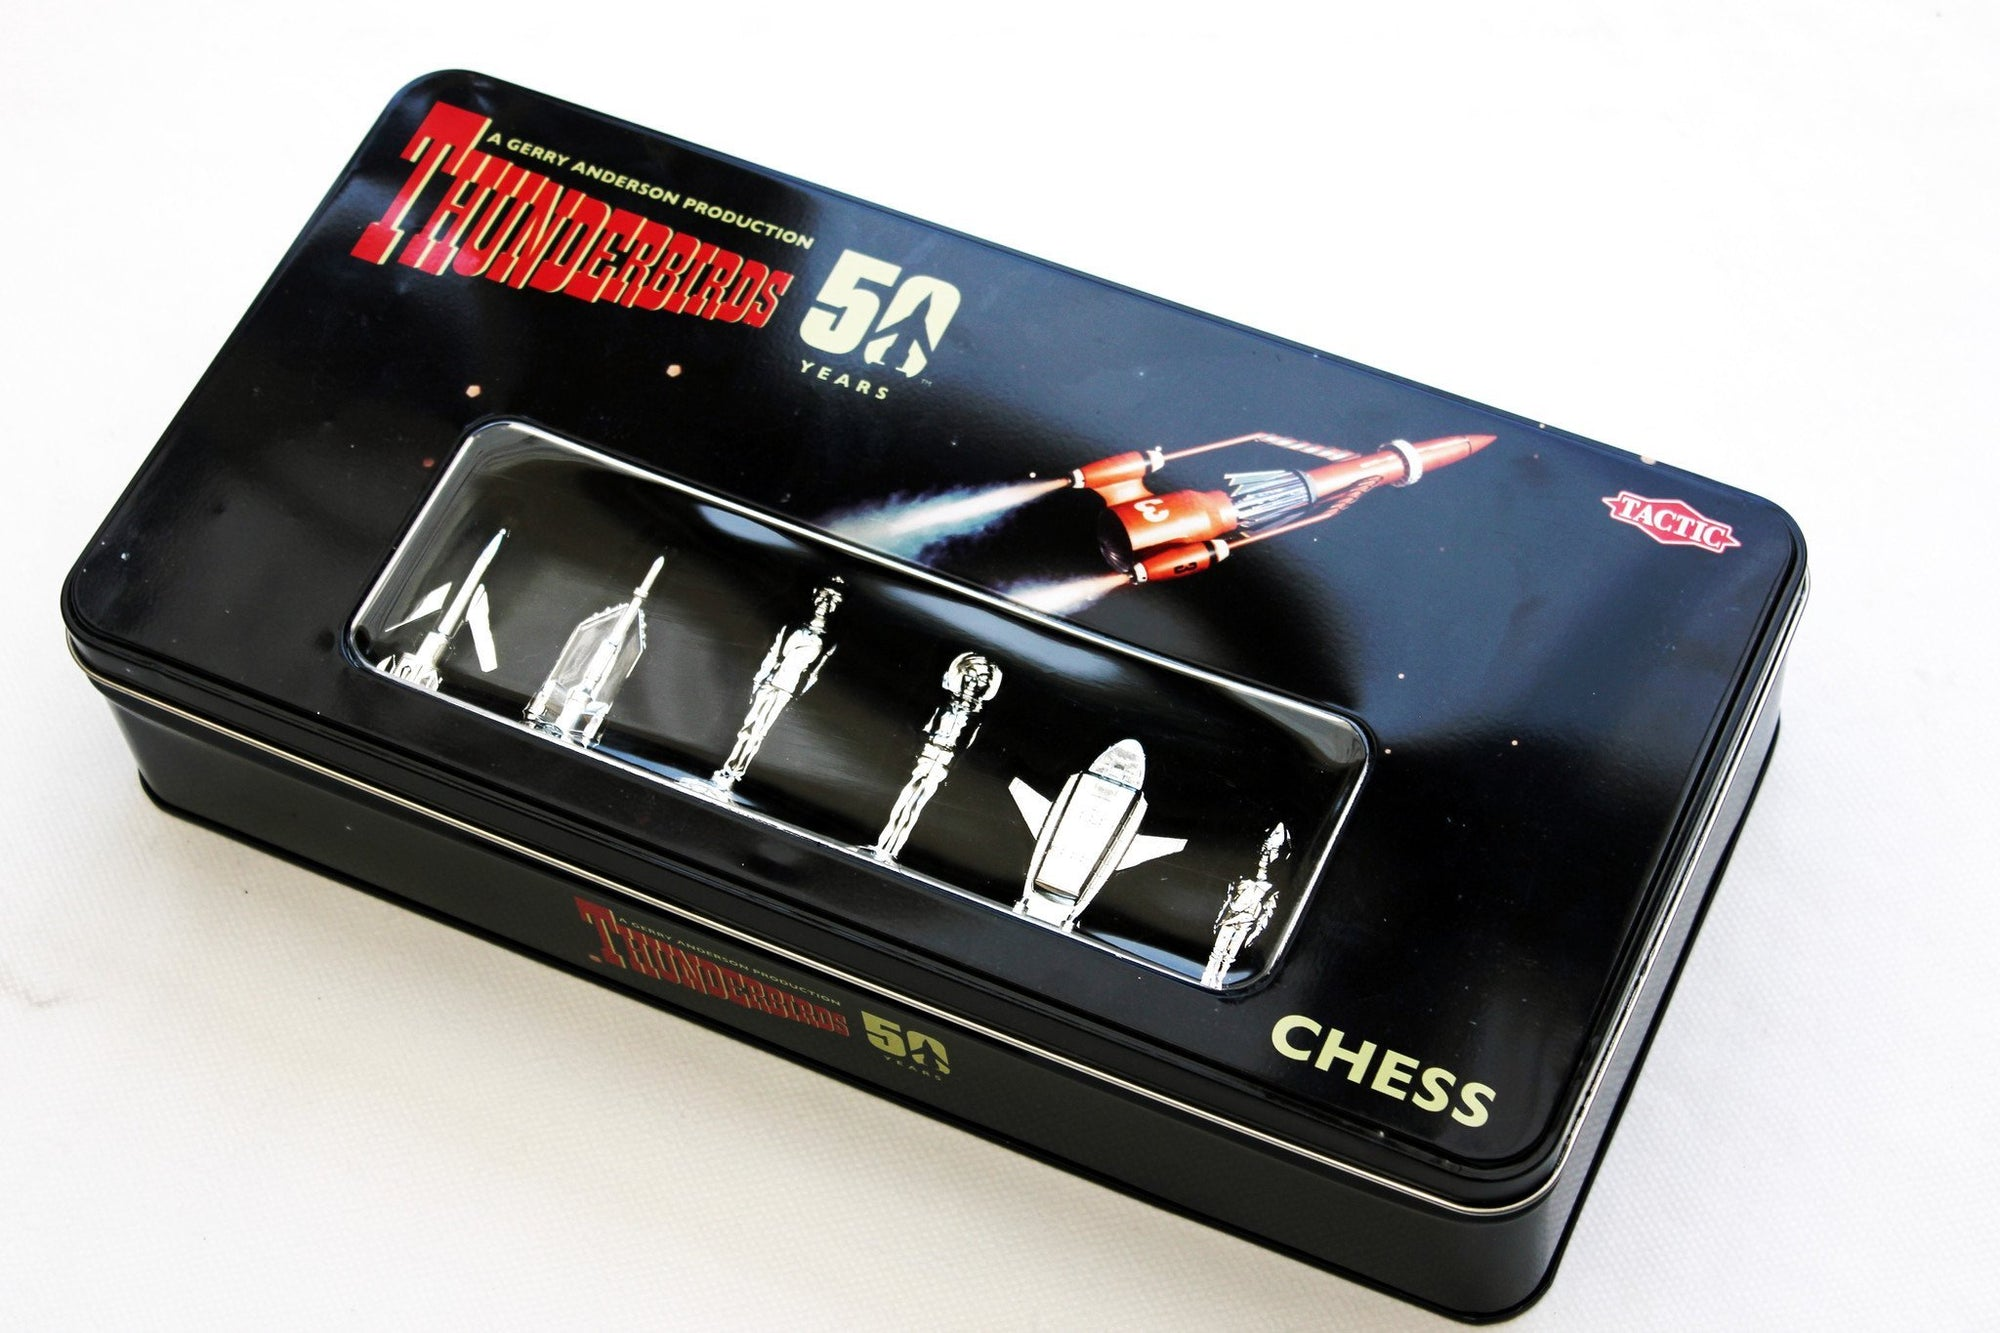 Settle the Score with the Thunderbirds Chess Set! | The Gerry Anderson Store